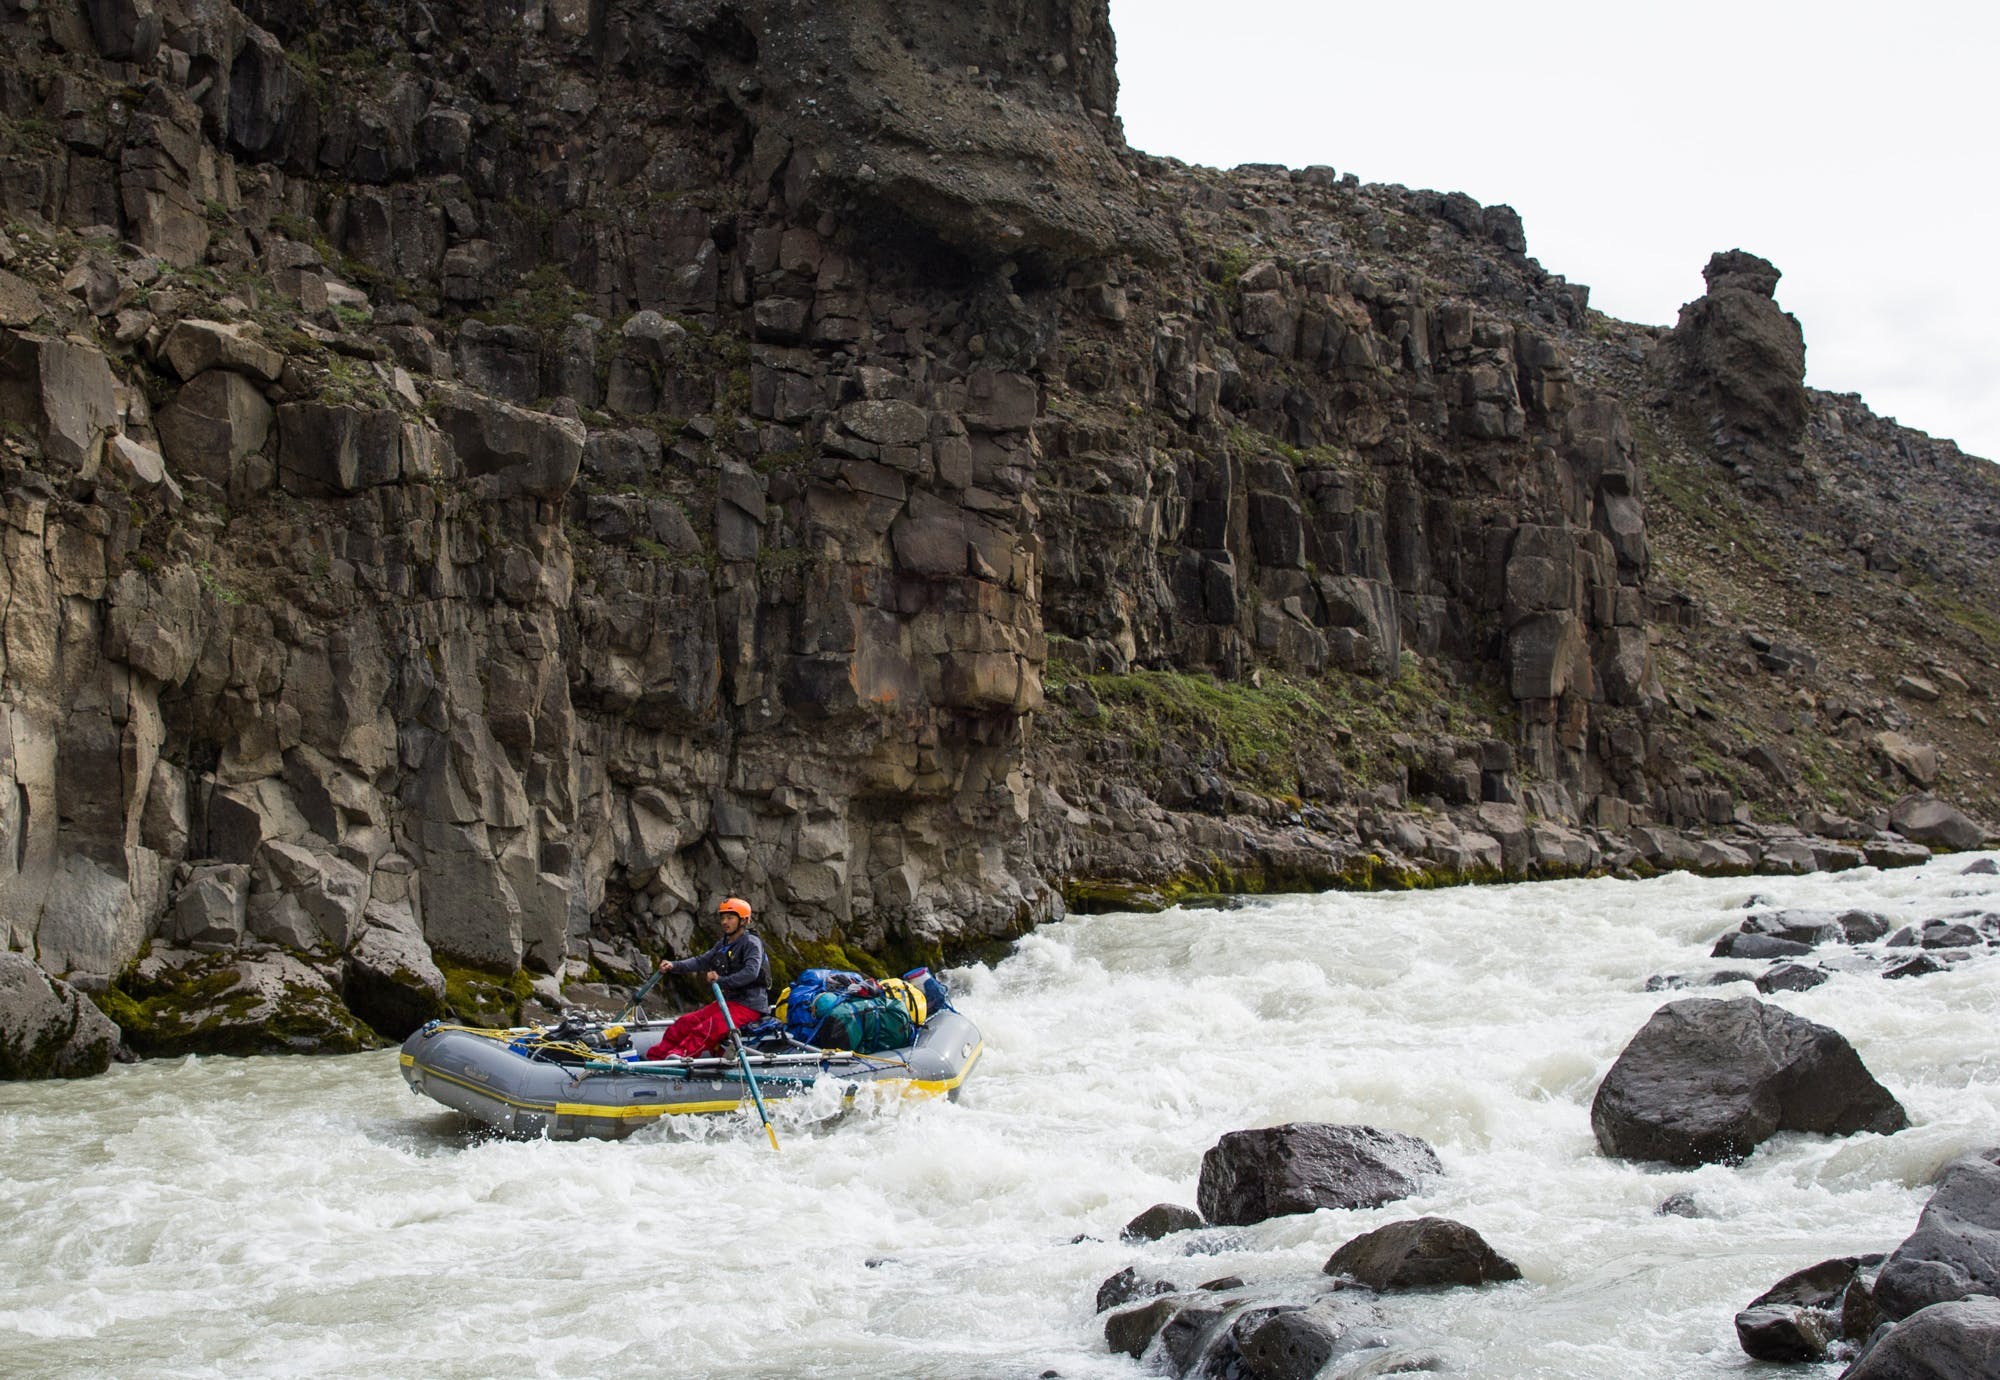 Rafting in the East Glacier River in Iceland's summer.